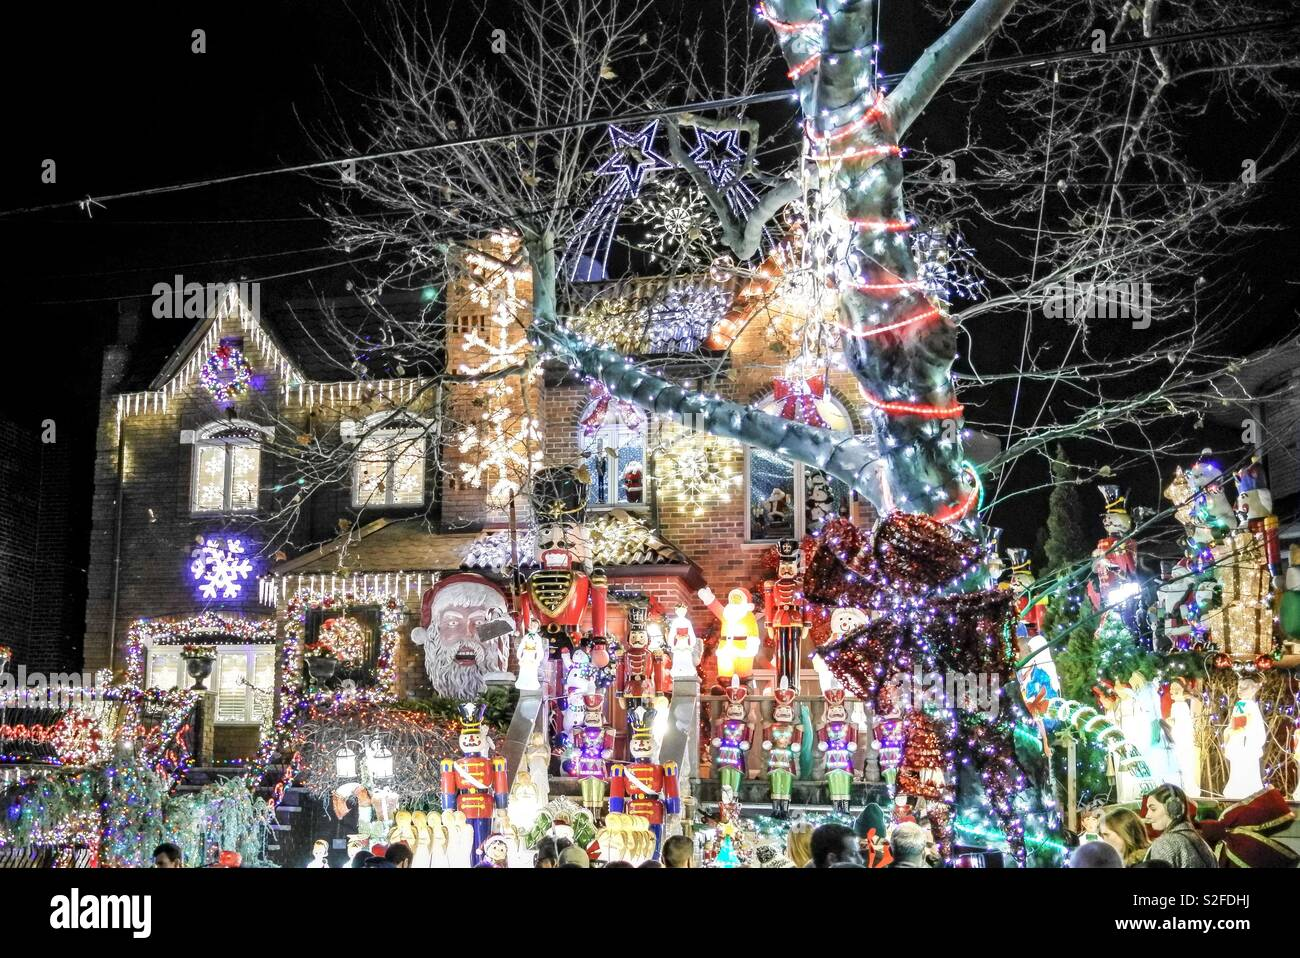 Dyker Heights Brooklyn Christmas Lights.Dyker Heights Christmas Lights Stock Photo 311355902 Alamy